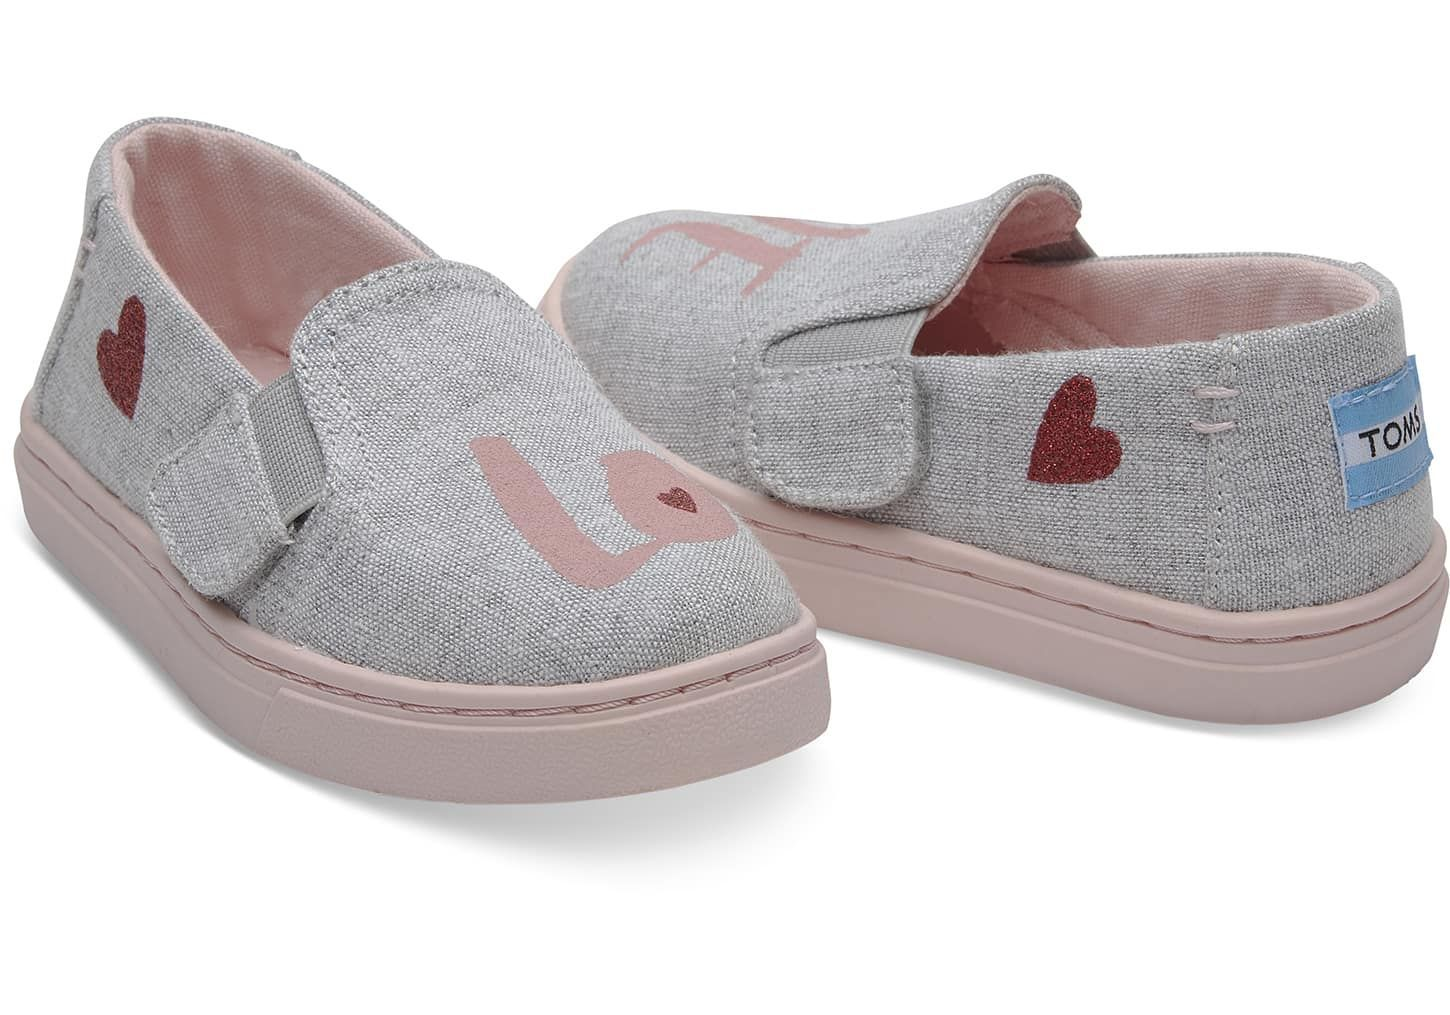 Tiny Toms DRIZZLE GREY LOVE TN LUCA SLIPON